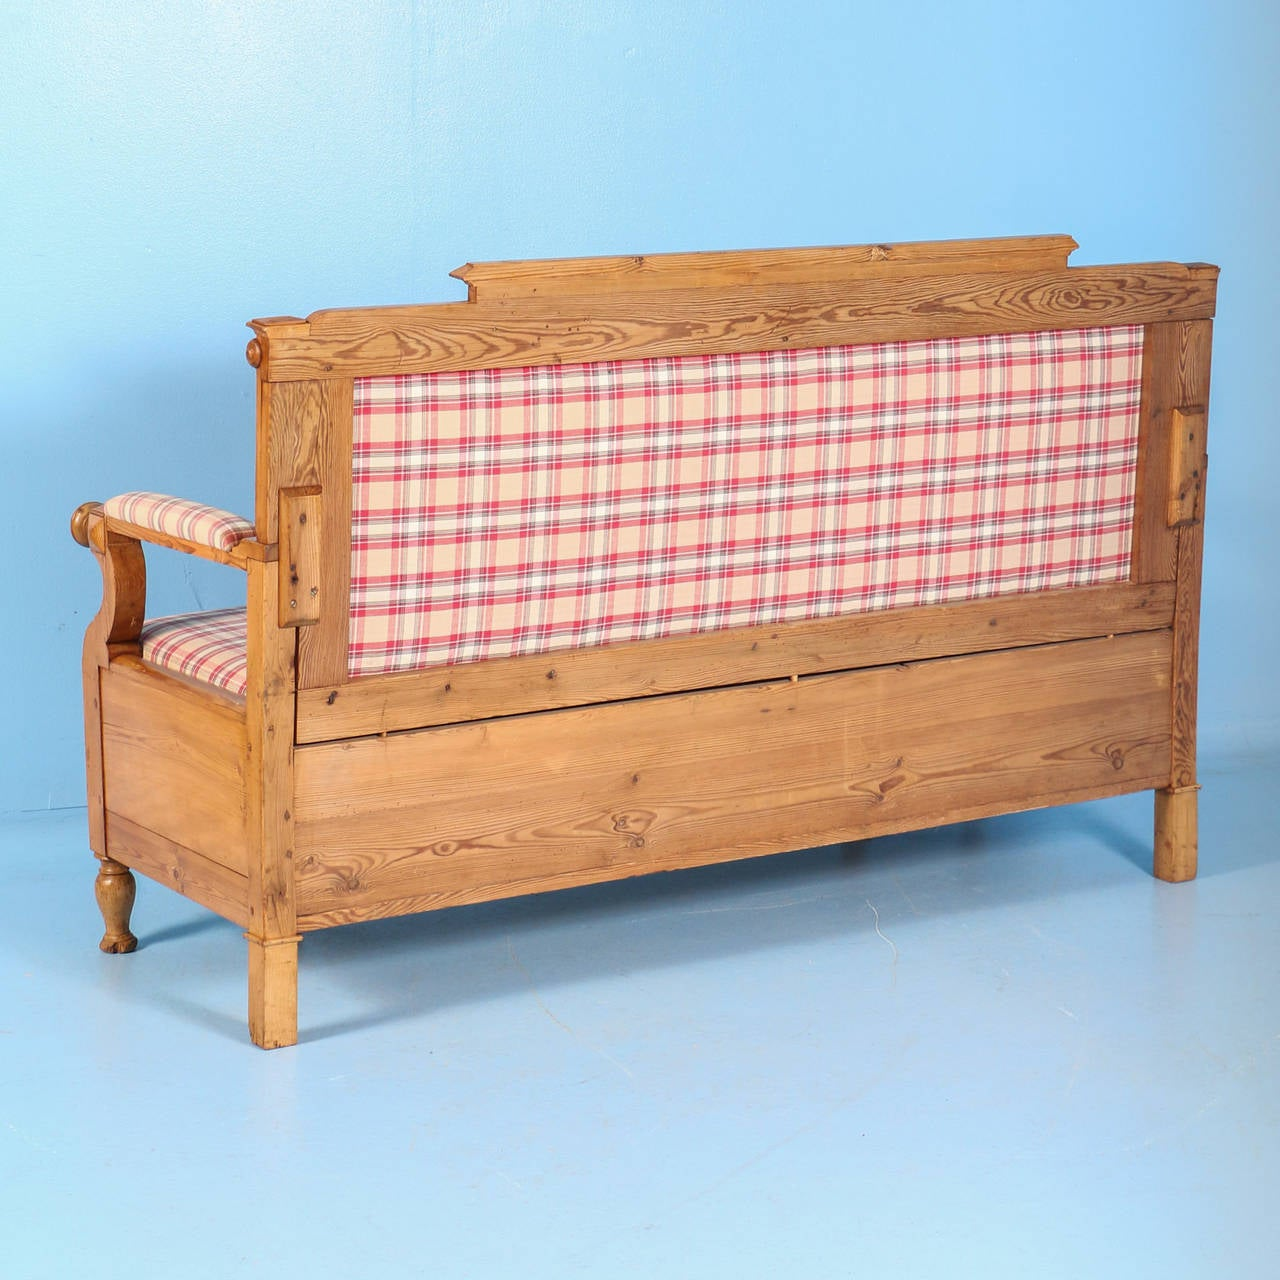 The lovely, simple lines of this bench are true to its Swedish country styling. The gently curved arms, turned feet and dentil molding along the back rest are some of the style elements that combine for a charming affect. The pine is waxed, bringing